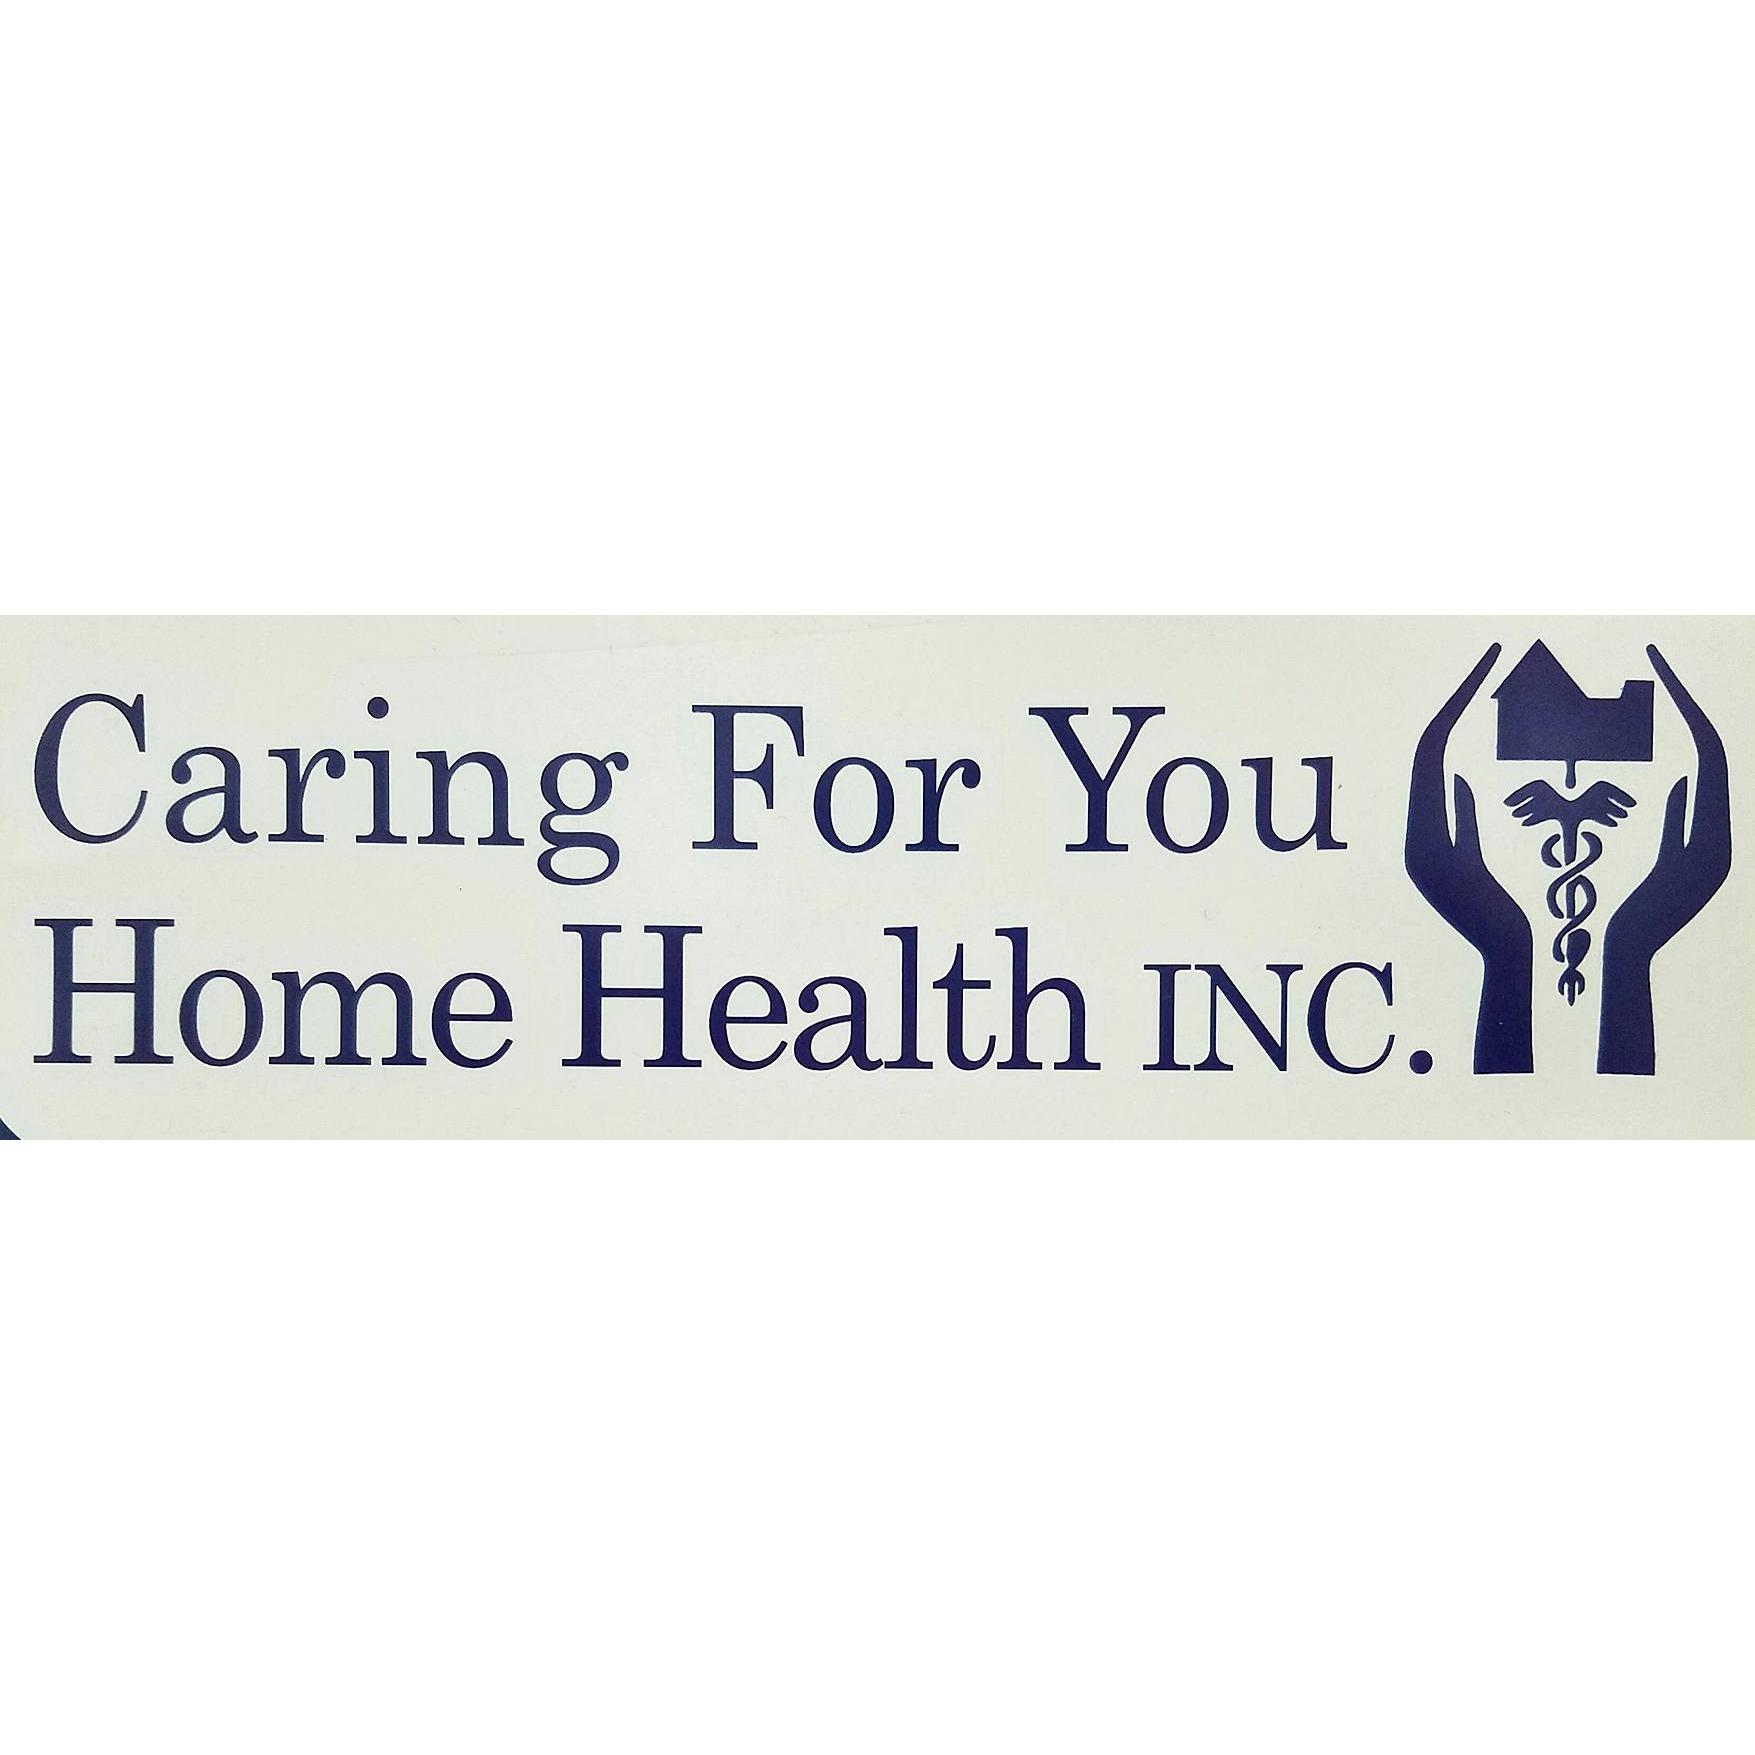 Caring For You Home Health, Inc.